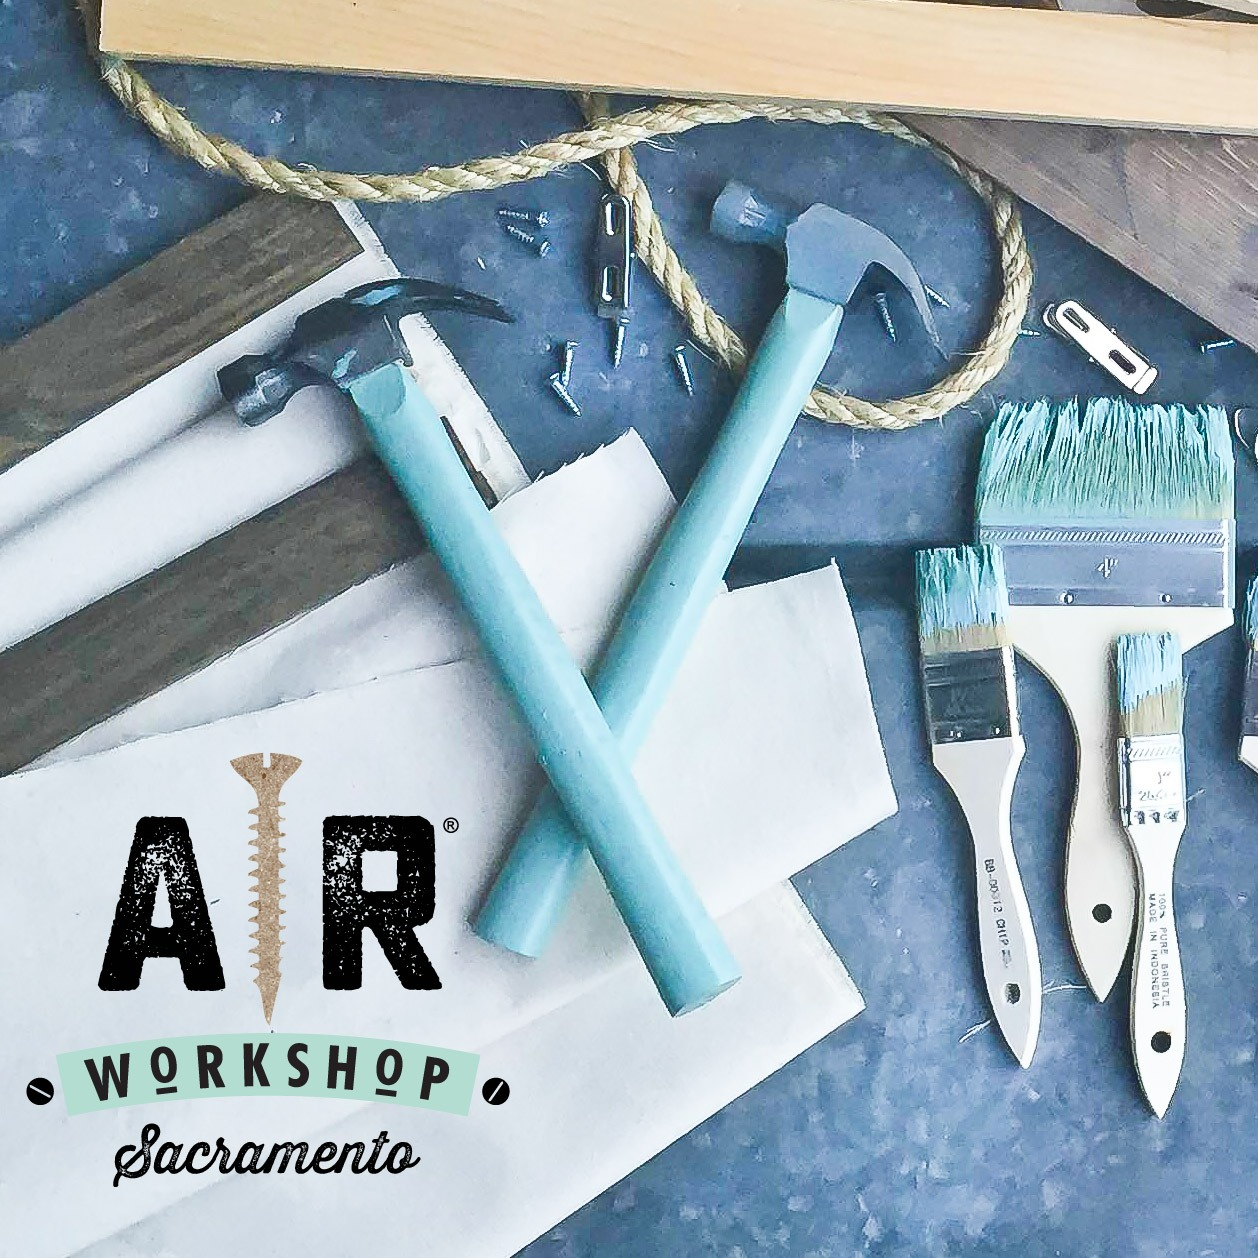 ar workshop sacramento ca